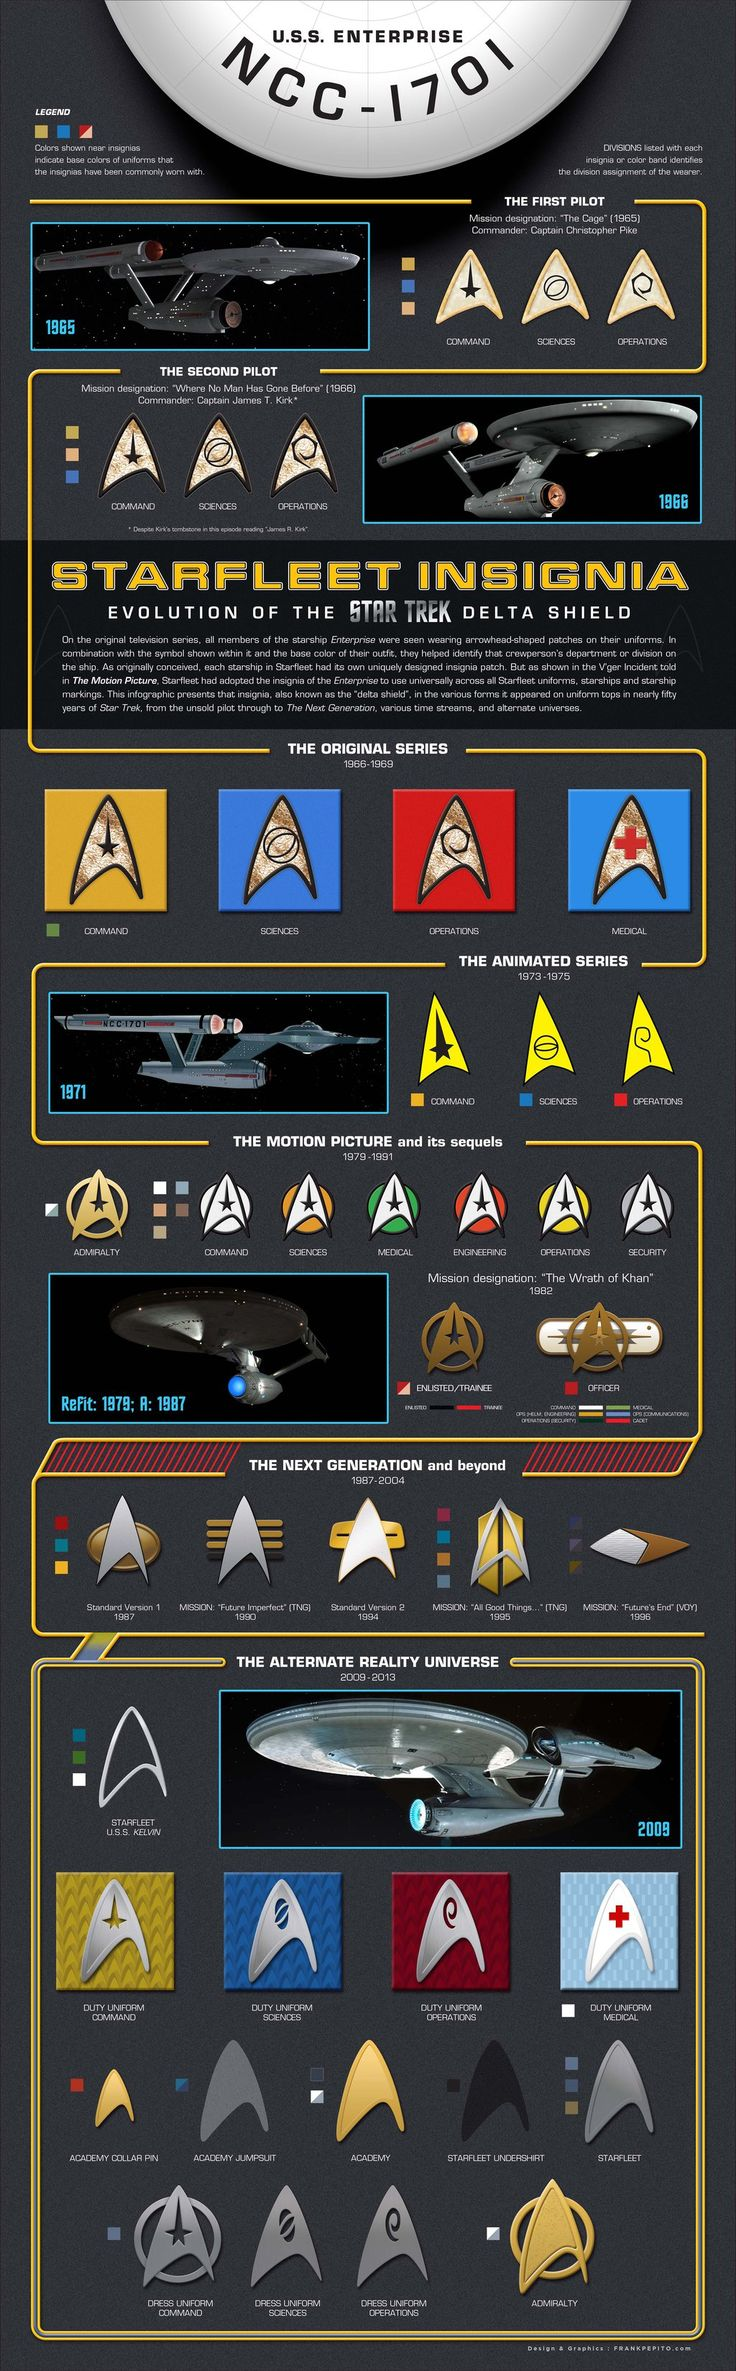 Starfleet Insignia: The Star Trek Delta Shield by YodaMaker.deviantart.com on @deviantART